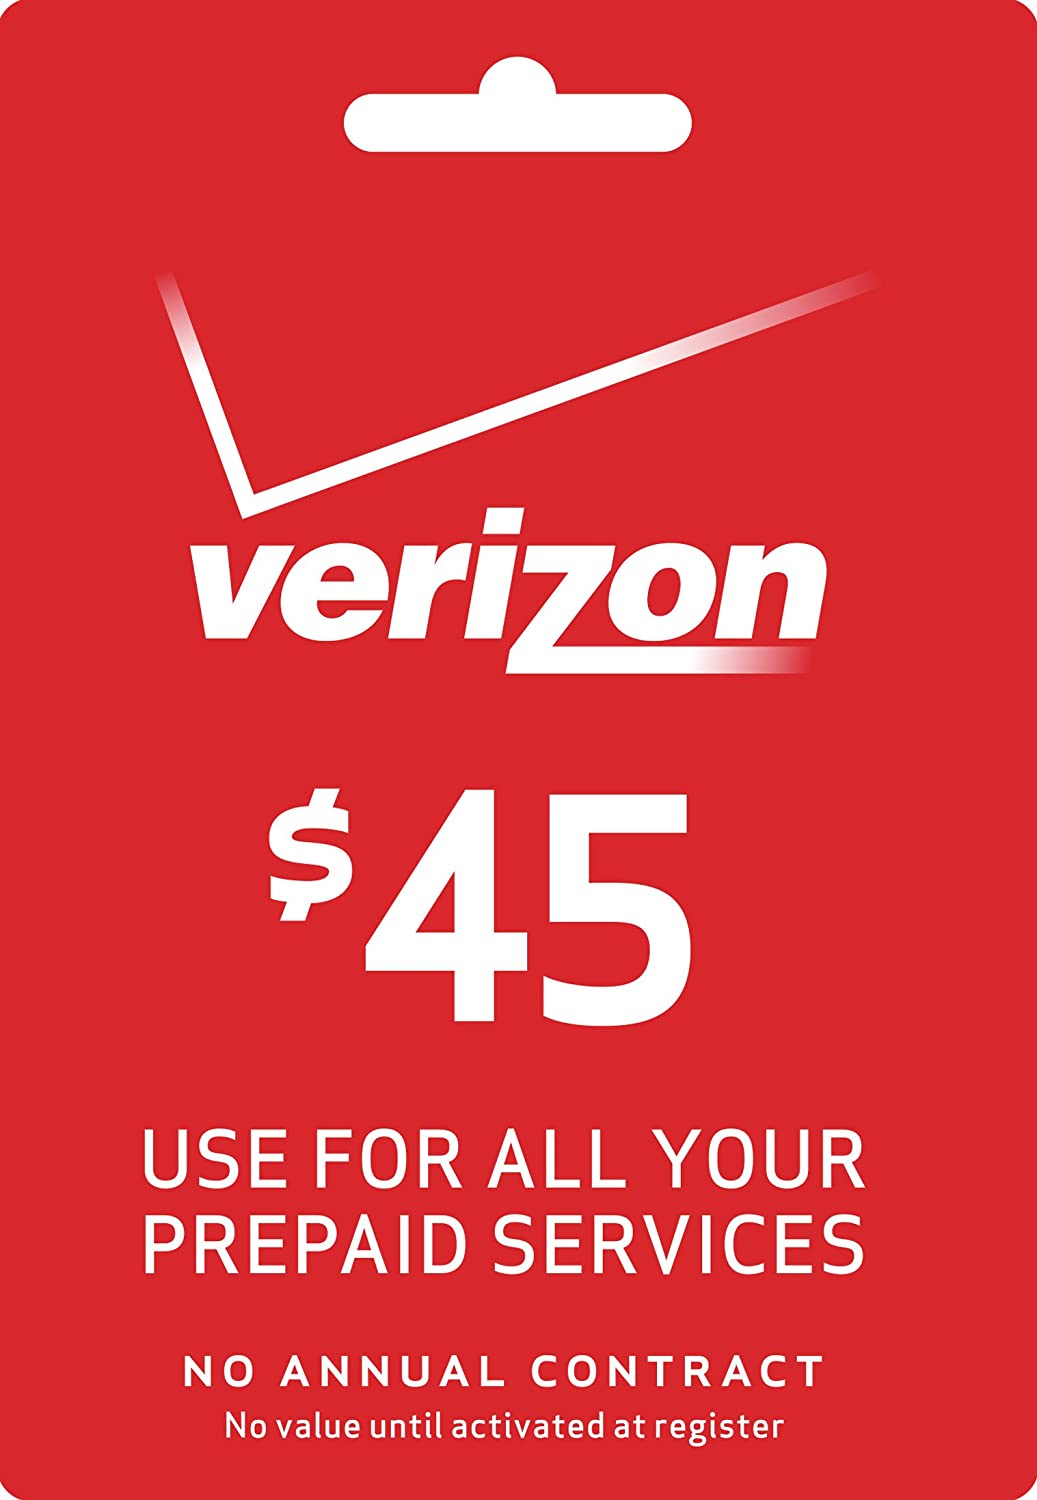 Amazon.com: Verizon $45 Prepaid Refill PIN Monthly Plan / Pay As You Go No  Annual Contract: Cell Phones & Accessories